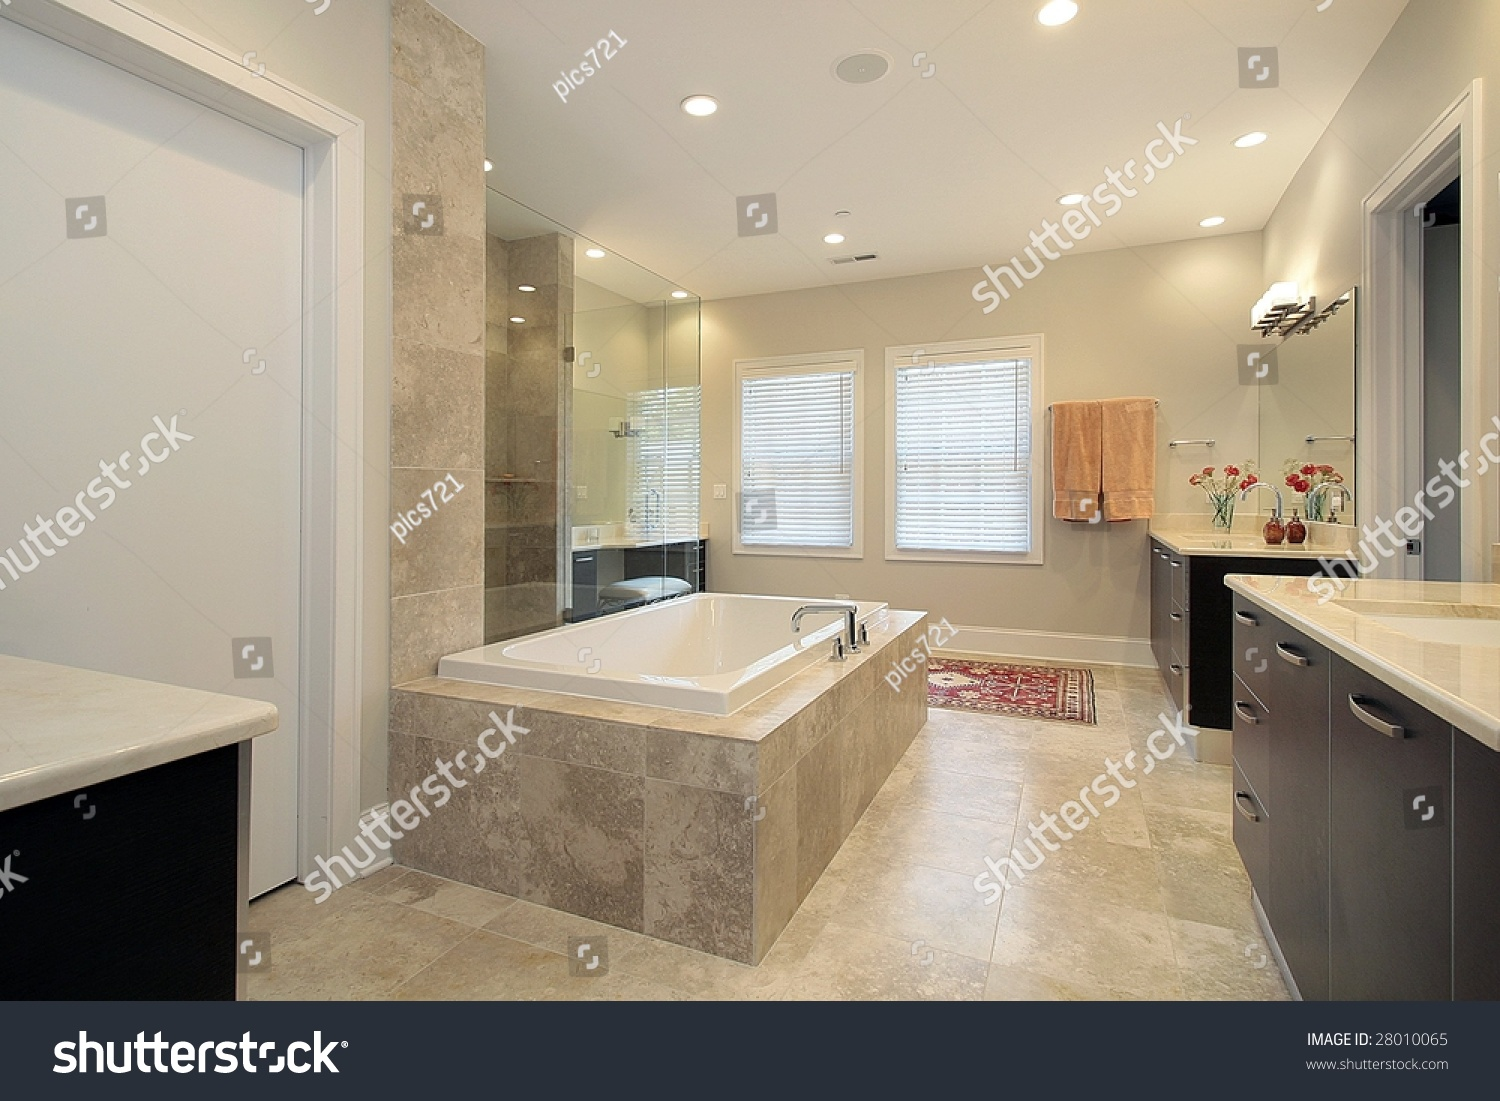 stock-photo-master-bath-in-new-construction-home-28010065